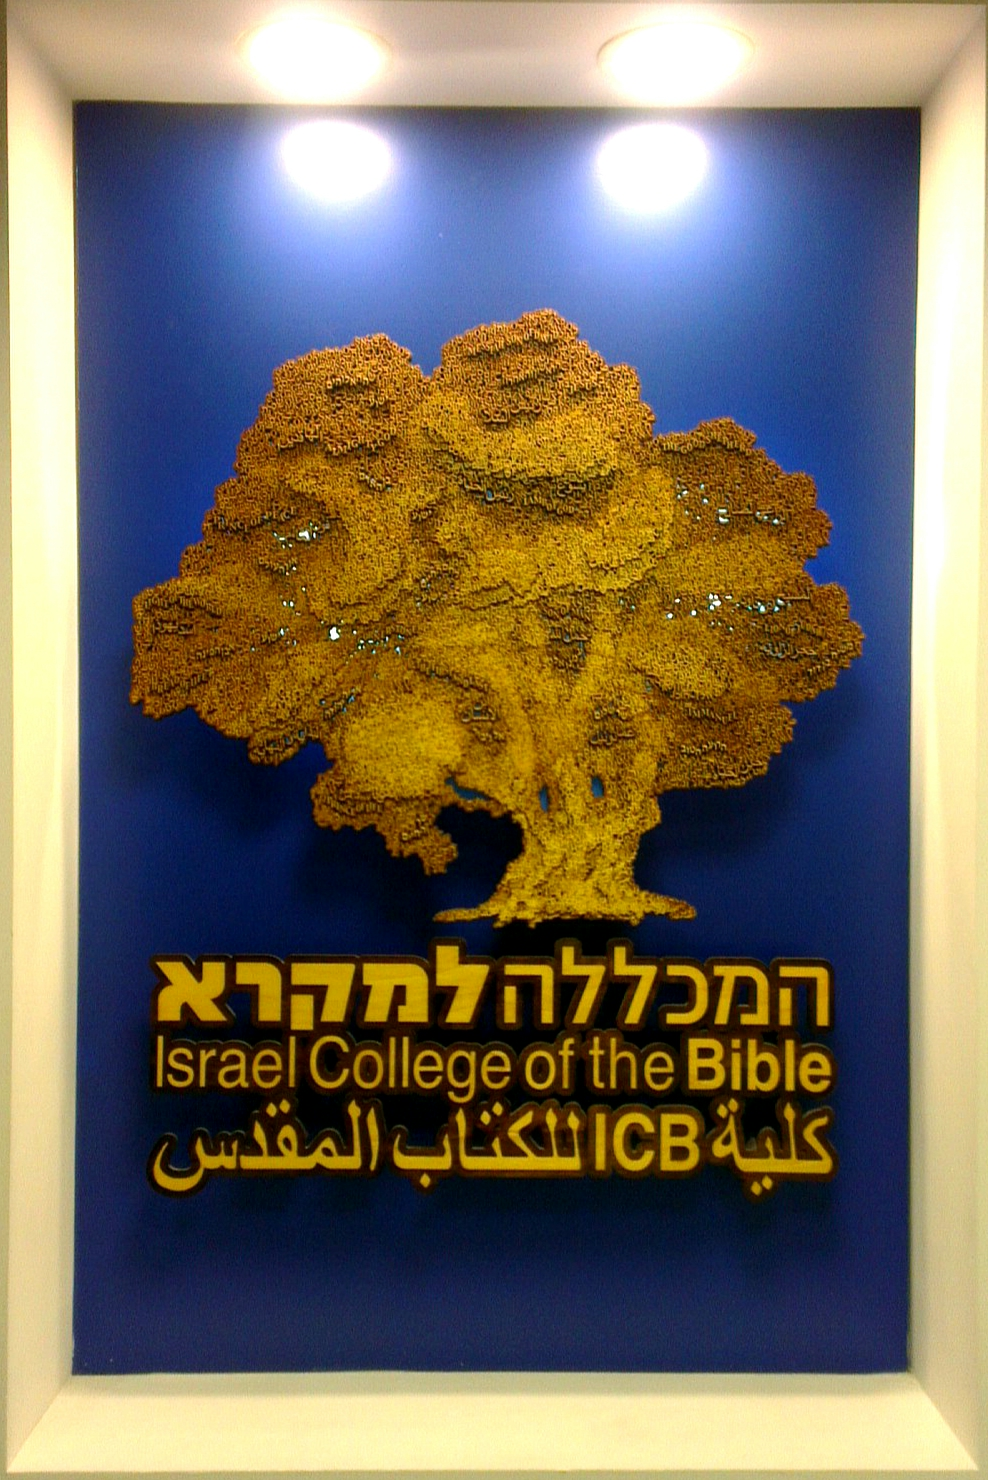 israel college of the bible wikipedia